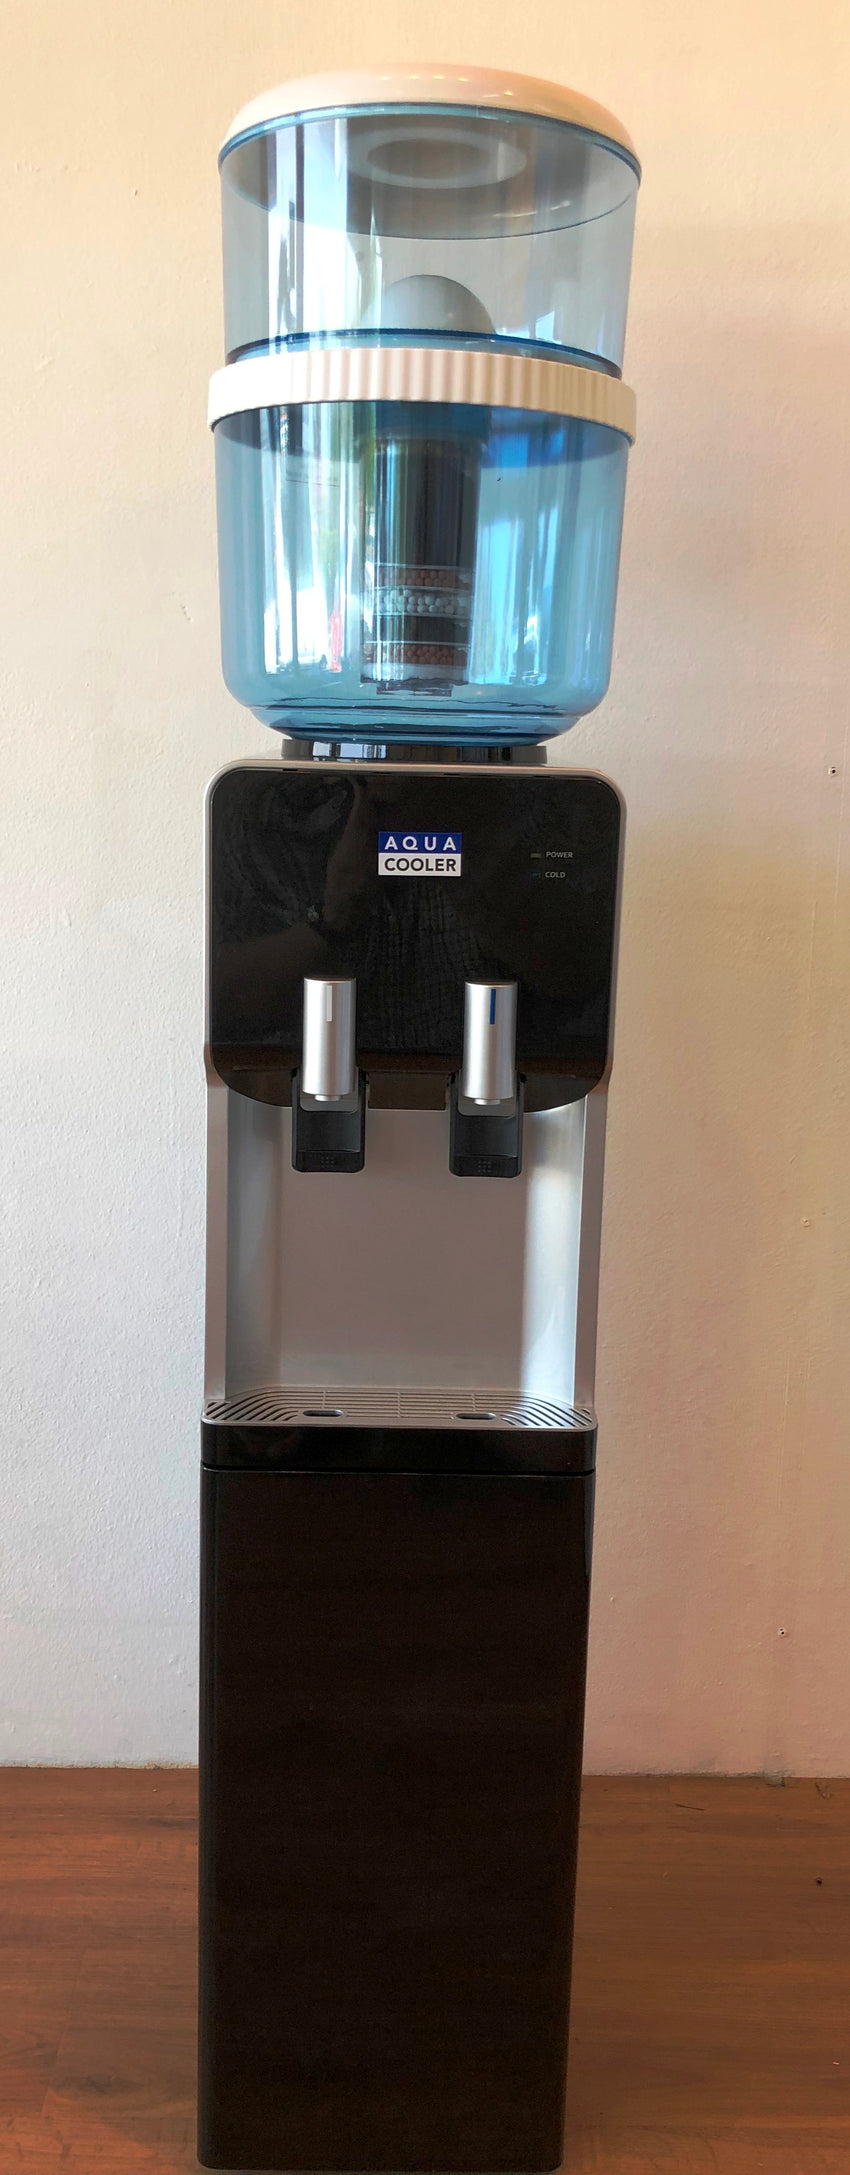 Aqua Cooler Dispenser With Awesome Cooler Bottle Filter Tower Standing